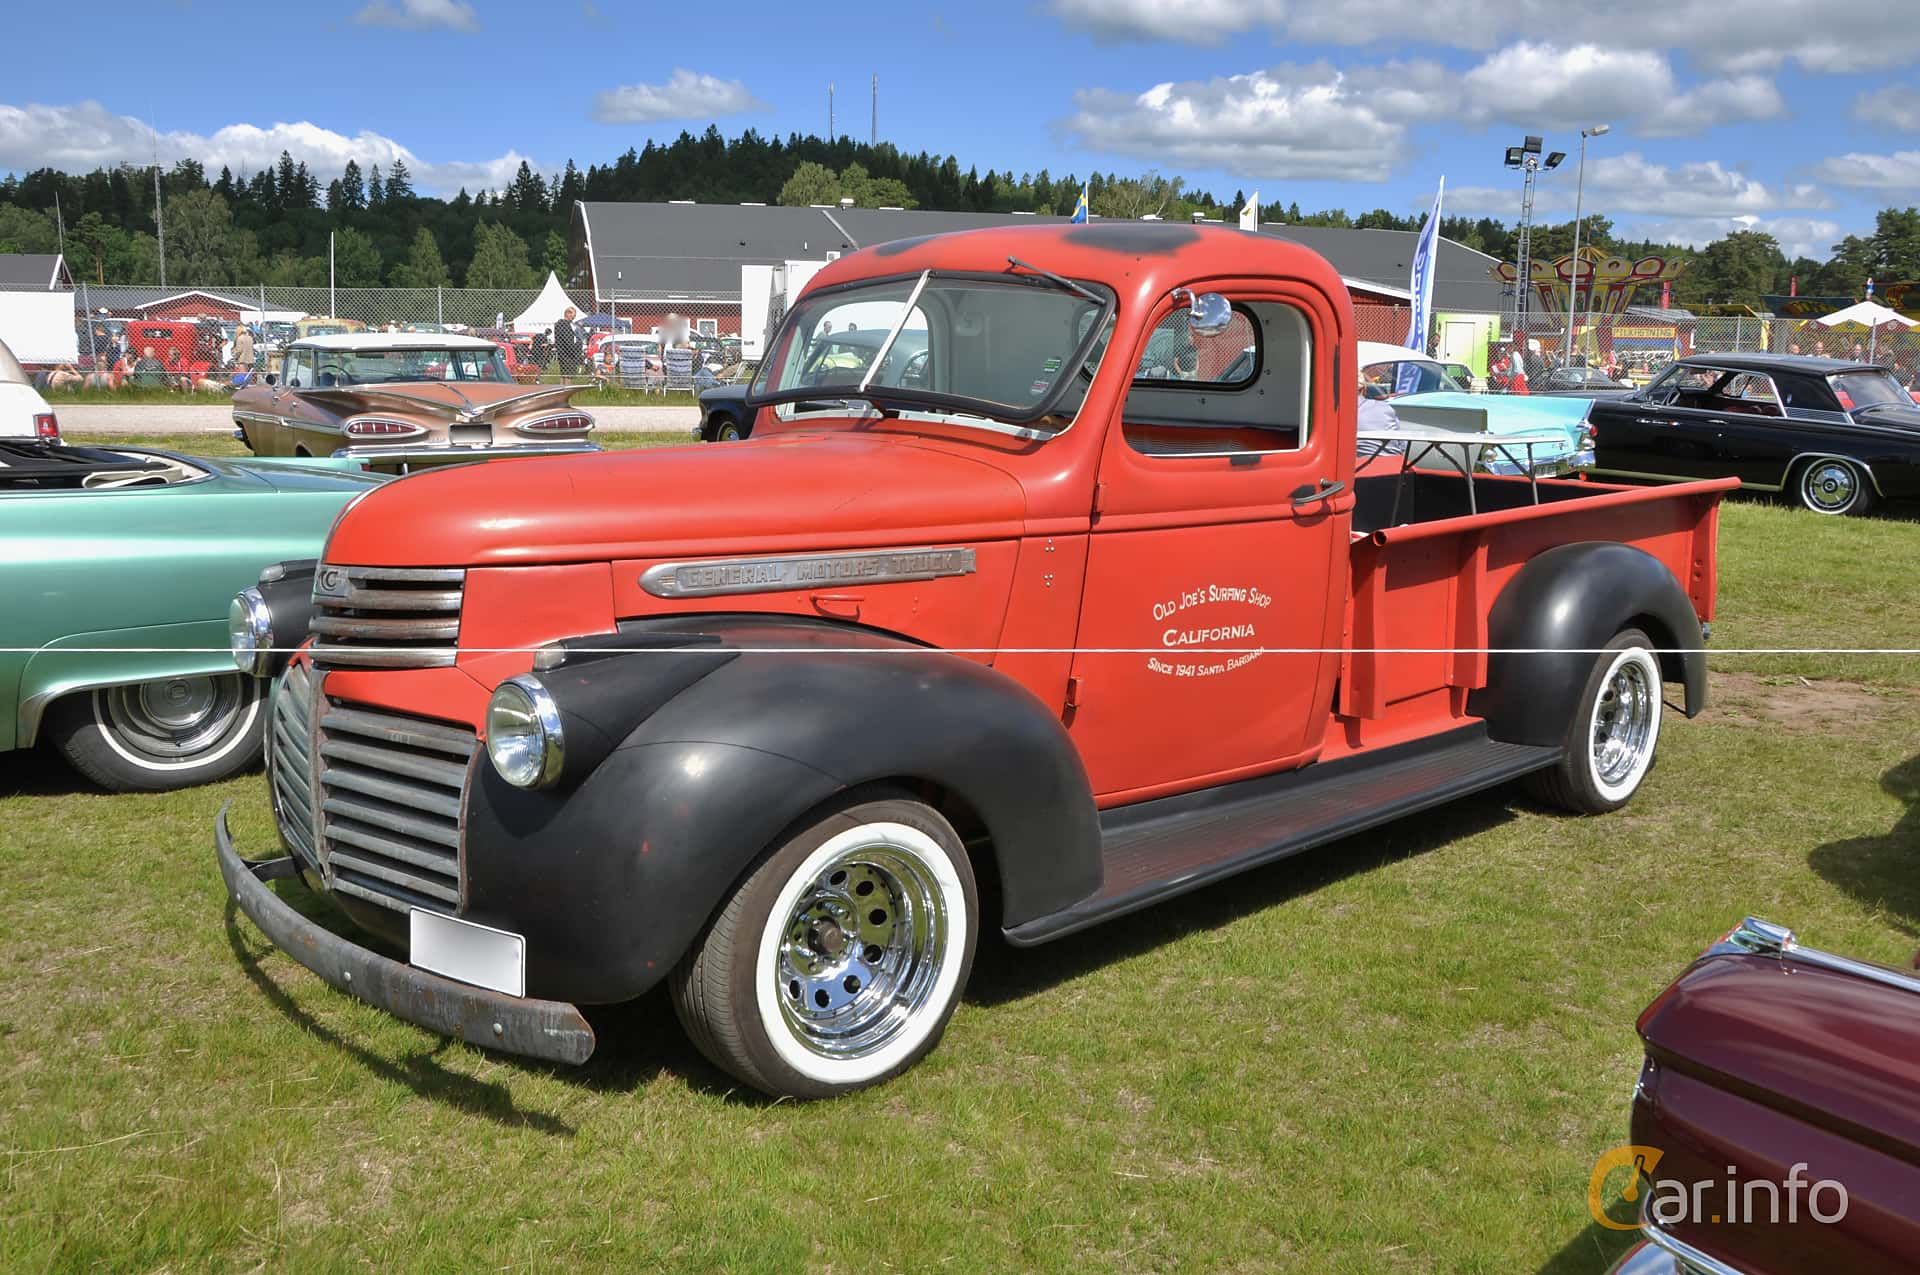 4 Images Of Gmc Cc150 Pickup 35 Manual 79hp 1941 By Jan Olof Truck Front Side 79ps At Nostalgifestivalen I